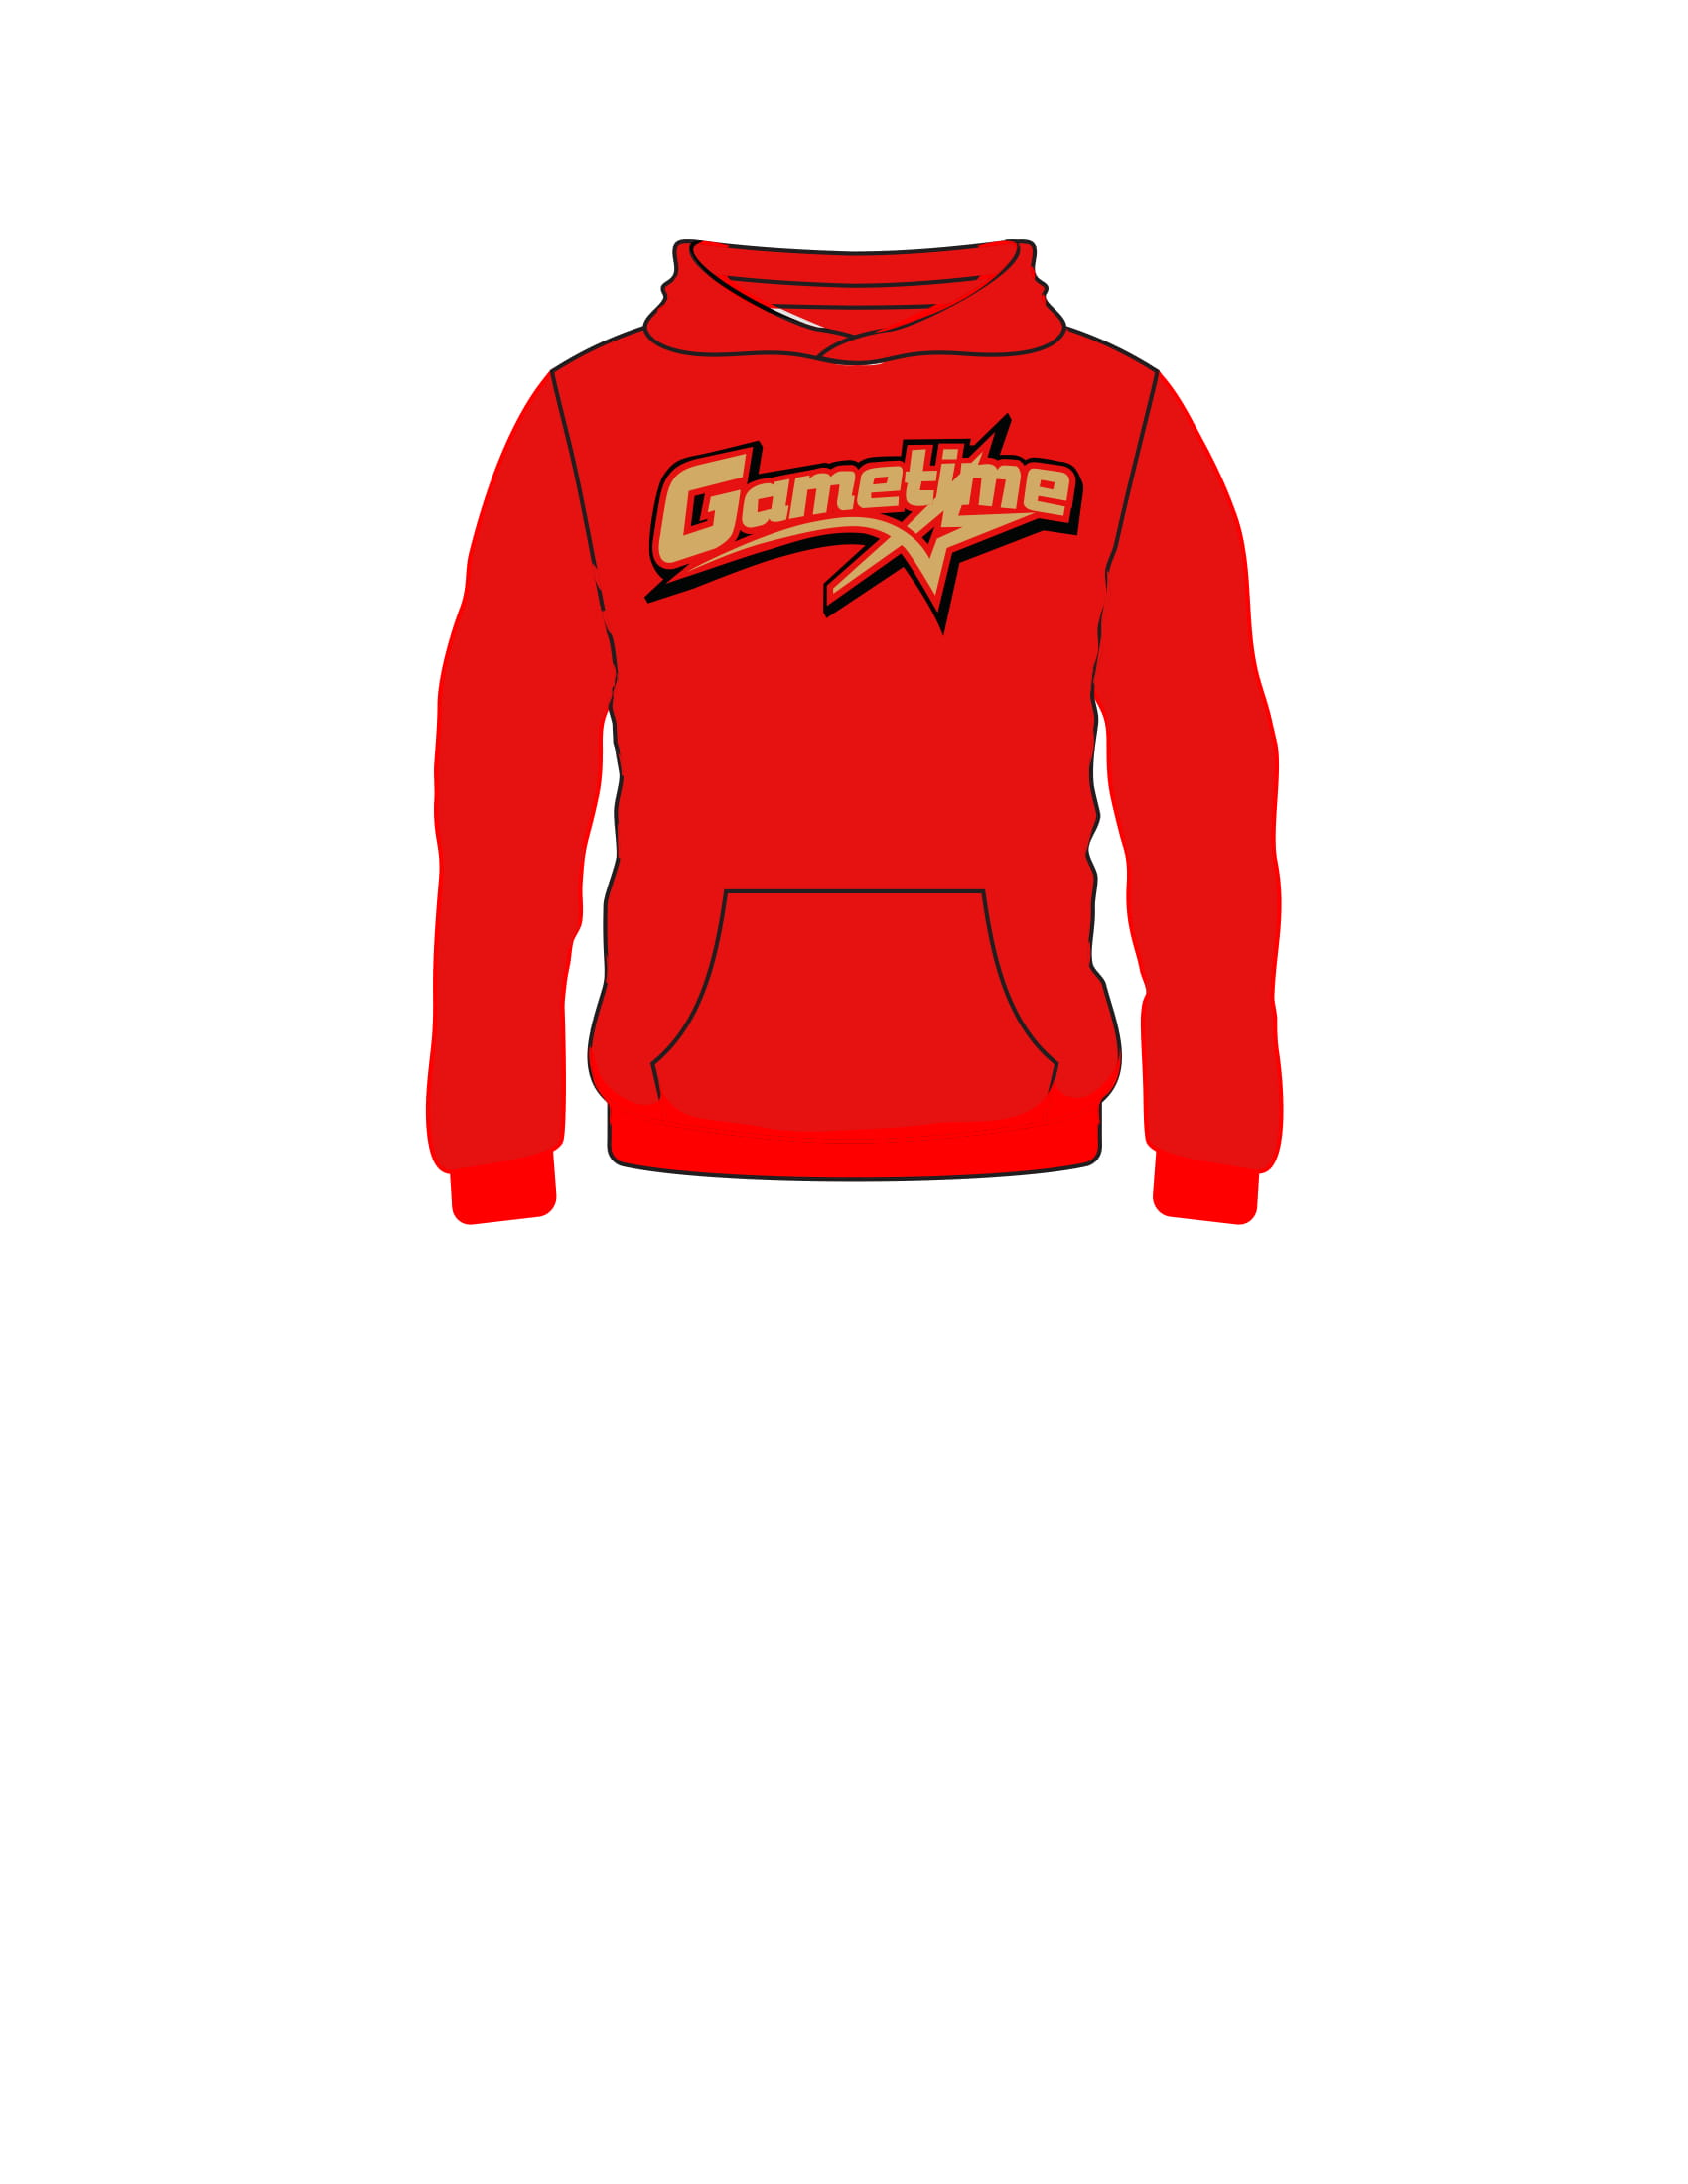 GAMETIME hooded sweatshirt